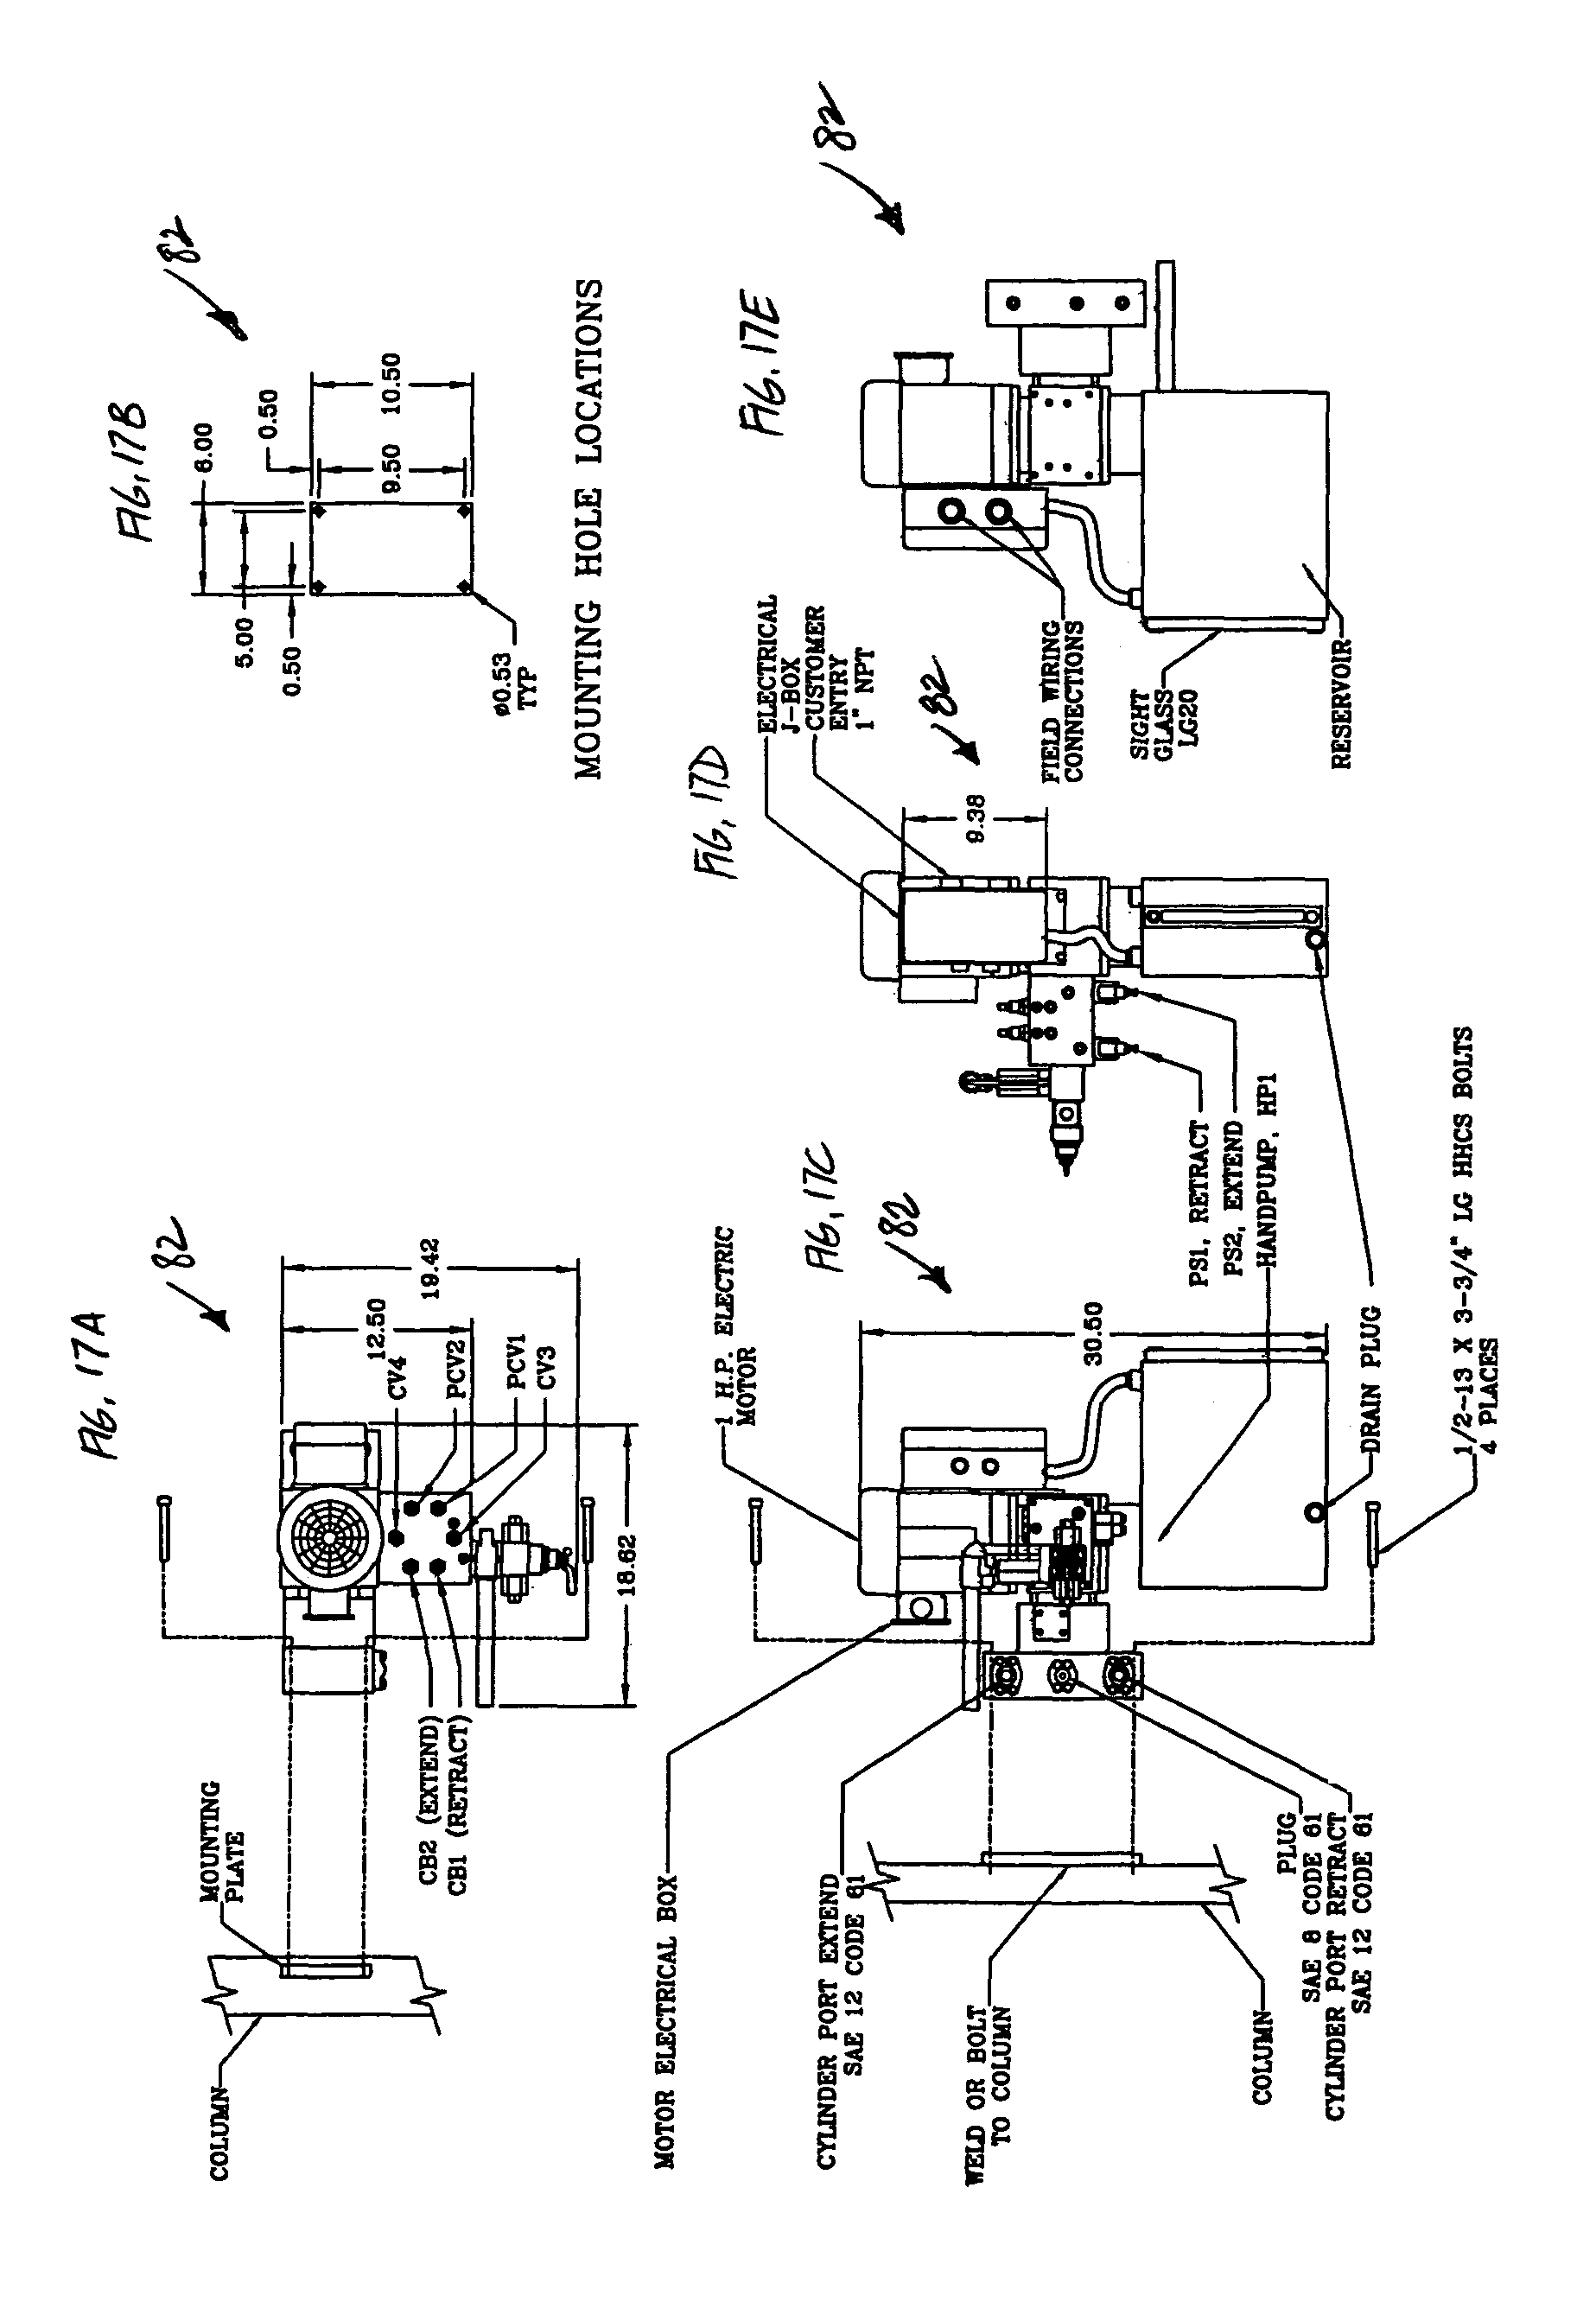 US07980636 20110719 D00019 patent us7980636 automated gate control and methods google patents wiring diagram for hydraulic dump trailer at sewacar.co